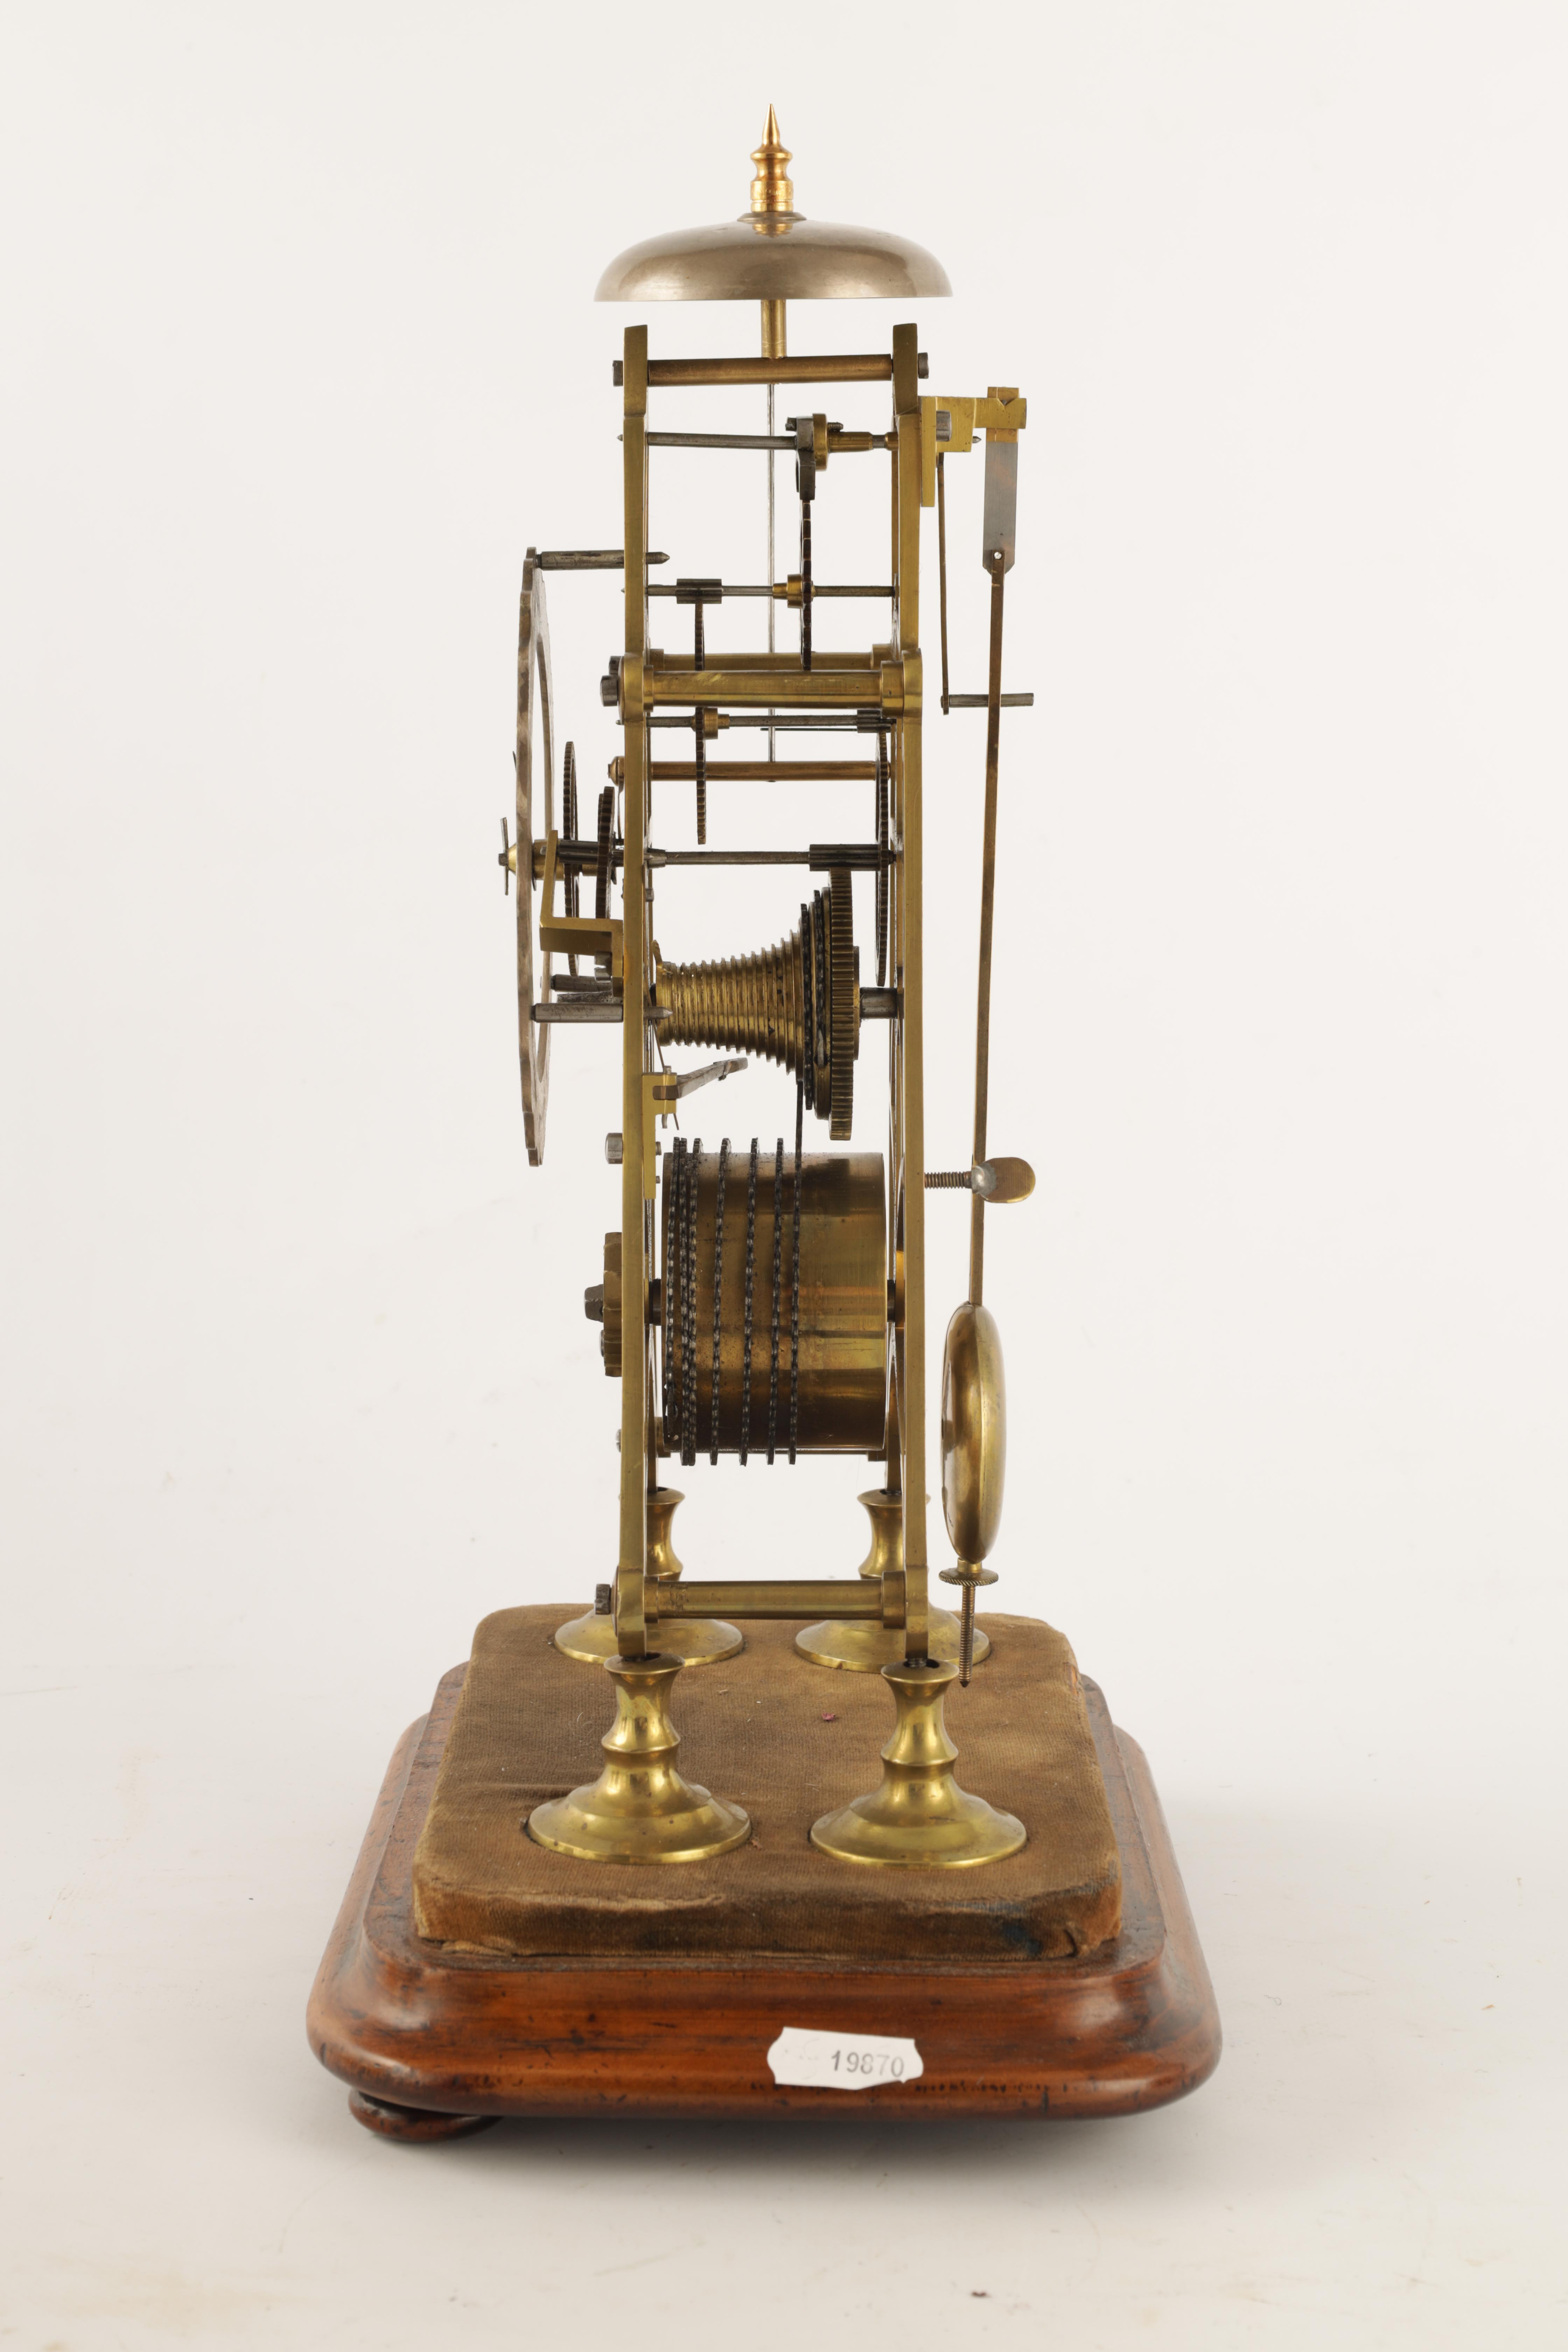 A 19TH CENTURY 8-DAY FUSEE TIMEPIECE SKELETON CLOCK with passing hour bell strike, tapering plates - Image 6 of 6